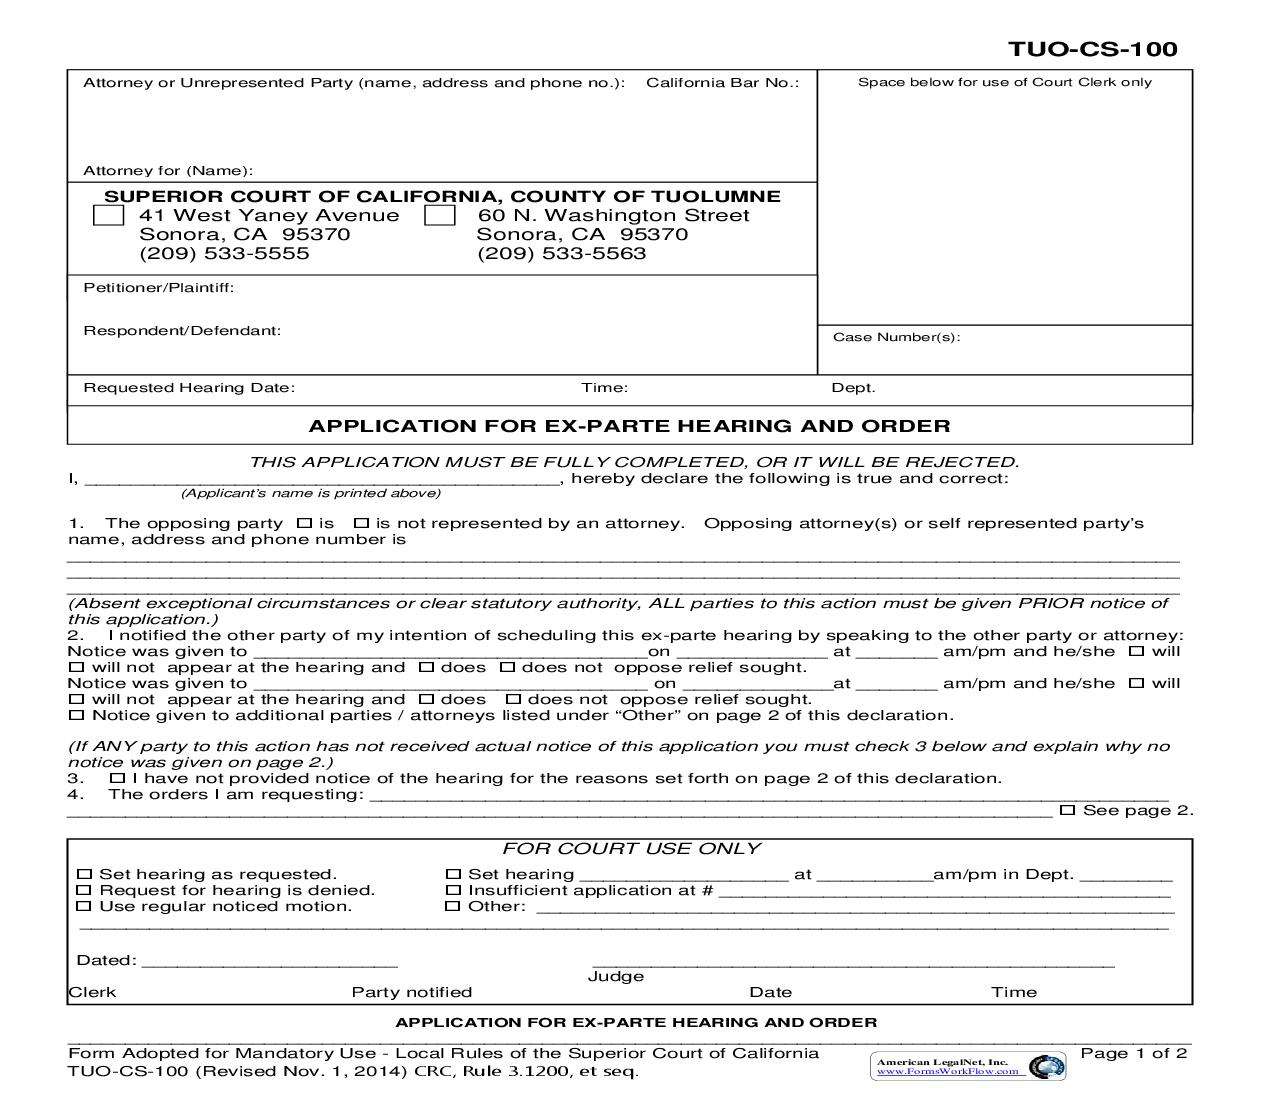 Application For Ex-Parte Hearing And Order {TUO-CS-100}   Pdf Fpdf Doc Docx   California